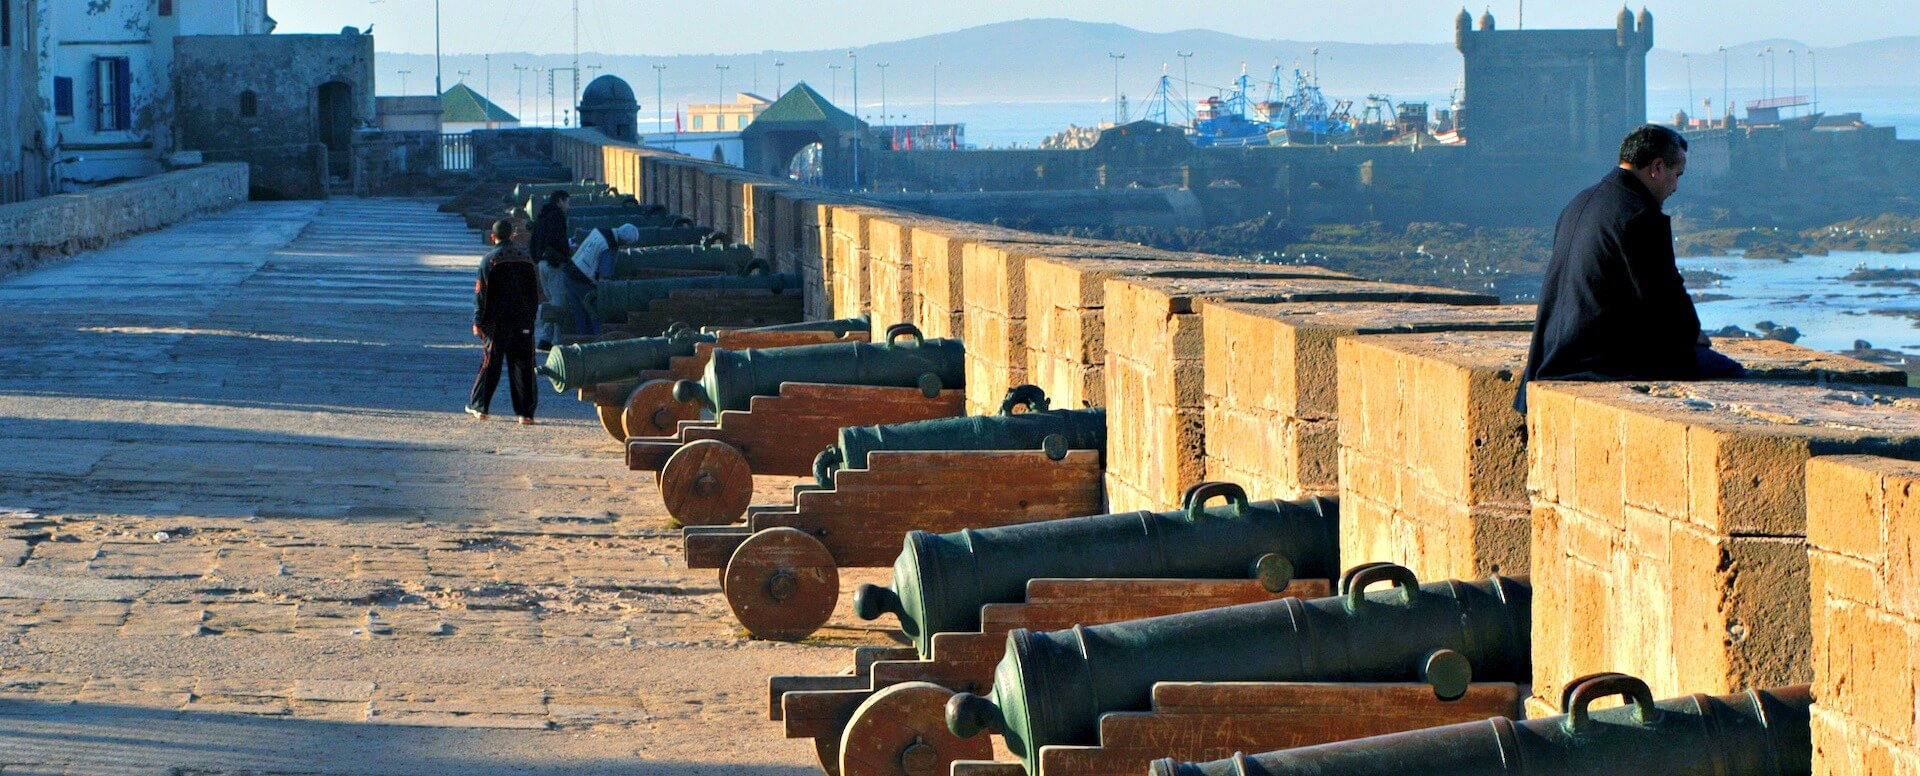 8. Relive history at the Ramparts - Essaouira